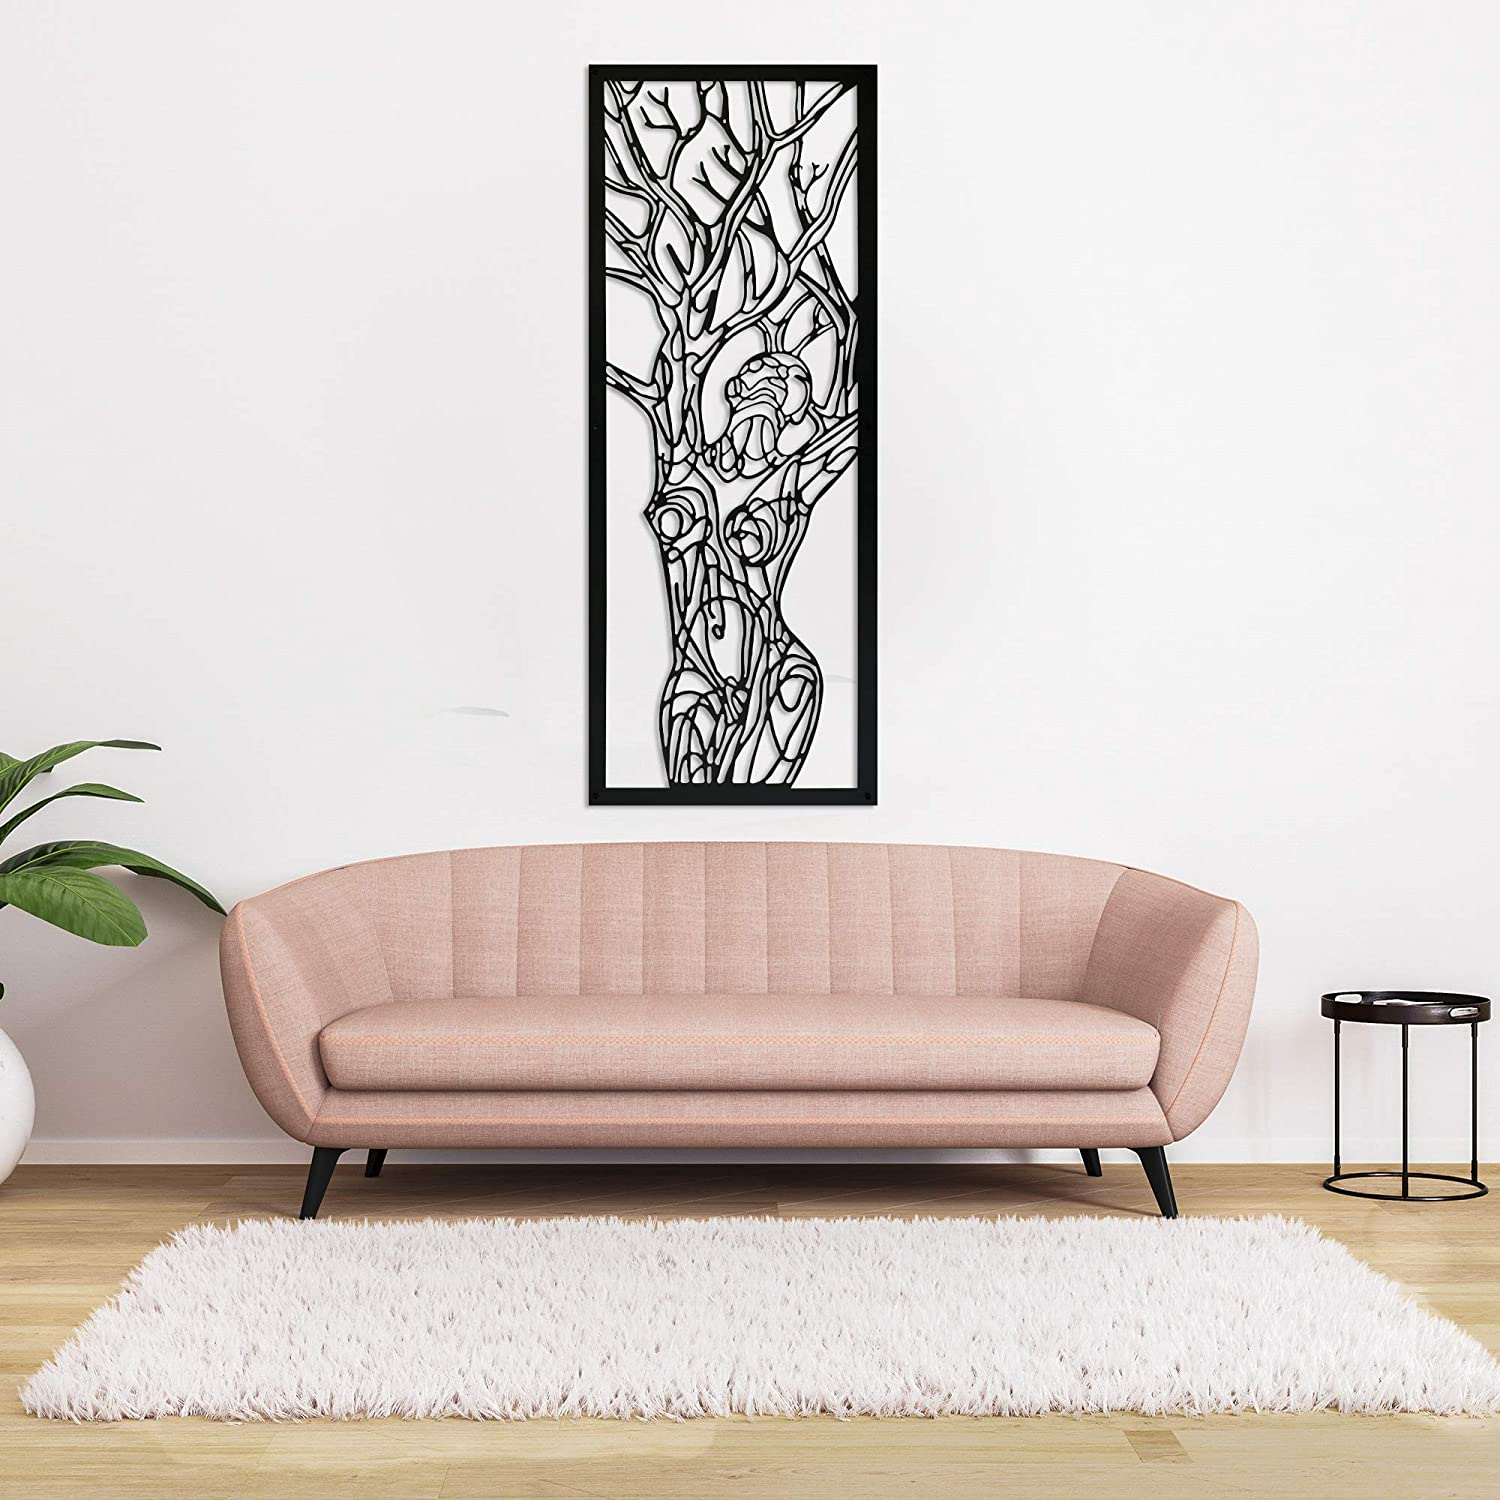 "Minimalist Line Art Woman, Tree of Life, Large Metal Wall Decor, Aesthetic Design Gothic Home Decor for Room, Wall Art, Work Art, Personalized Gift (38"" x 14"")"